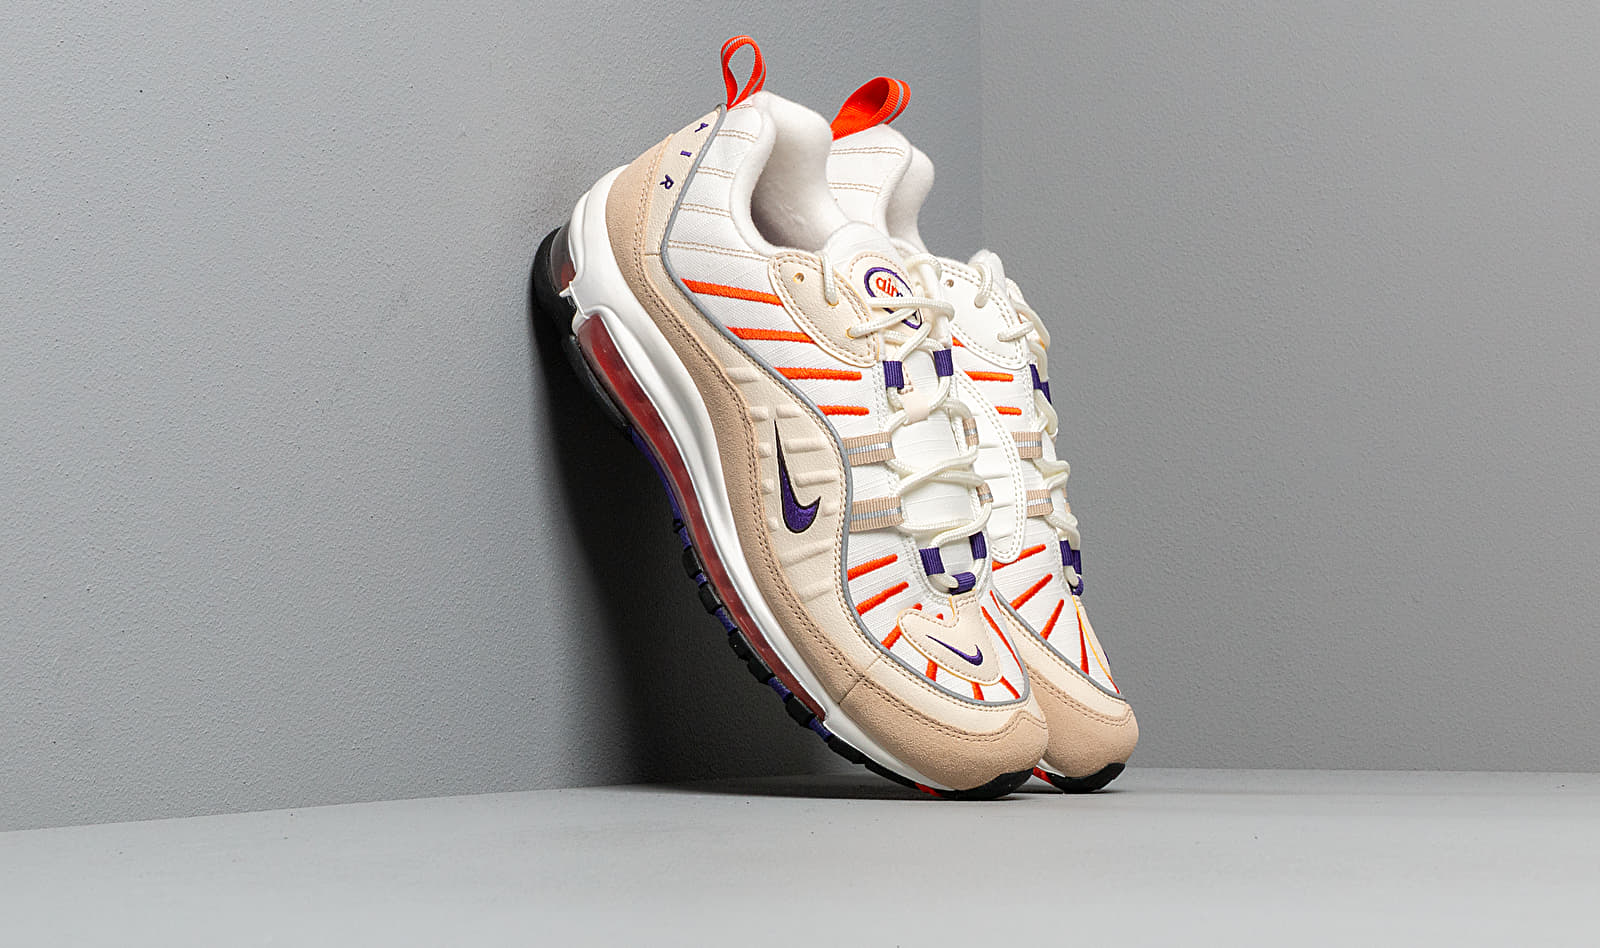 Nike Air Max 98 Sail/ Court Purple-Light Cream-Desert Ore 640744-108